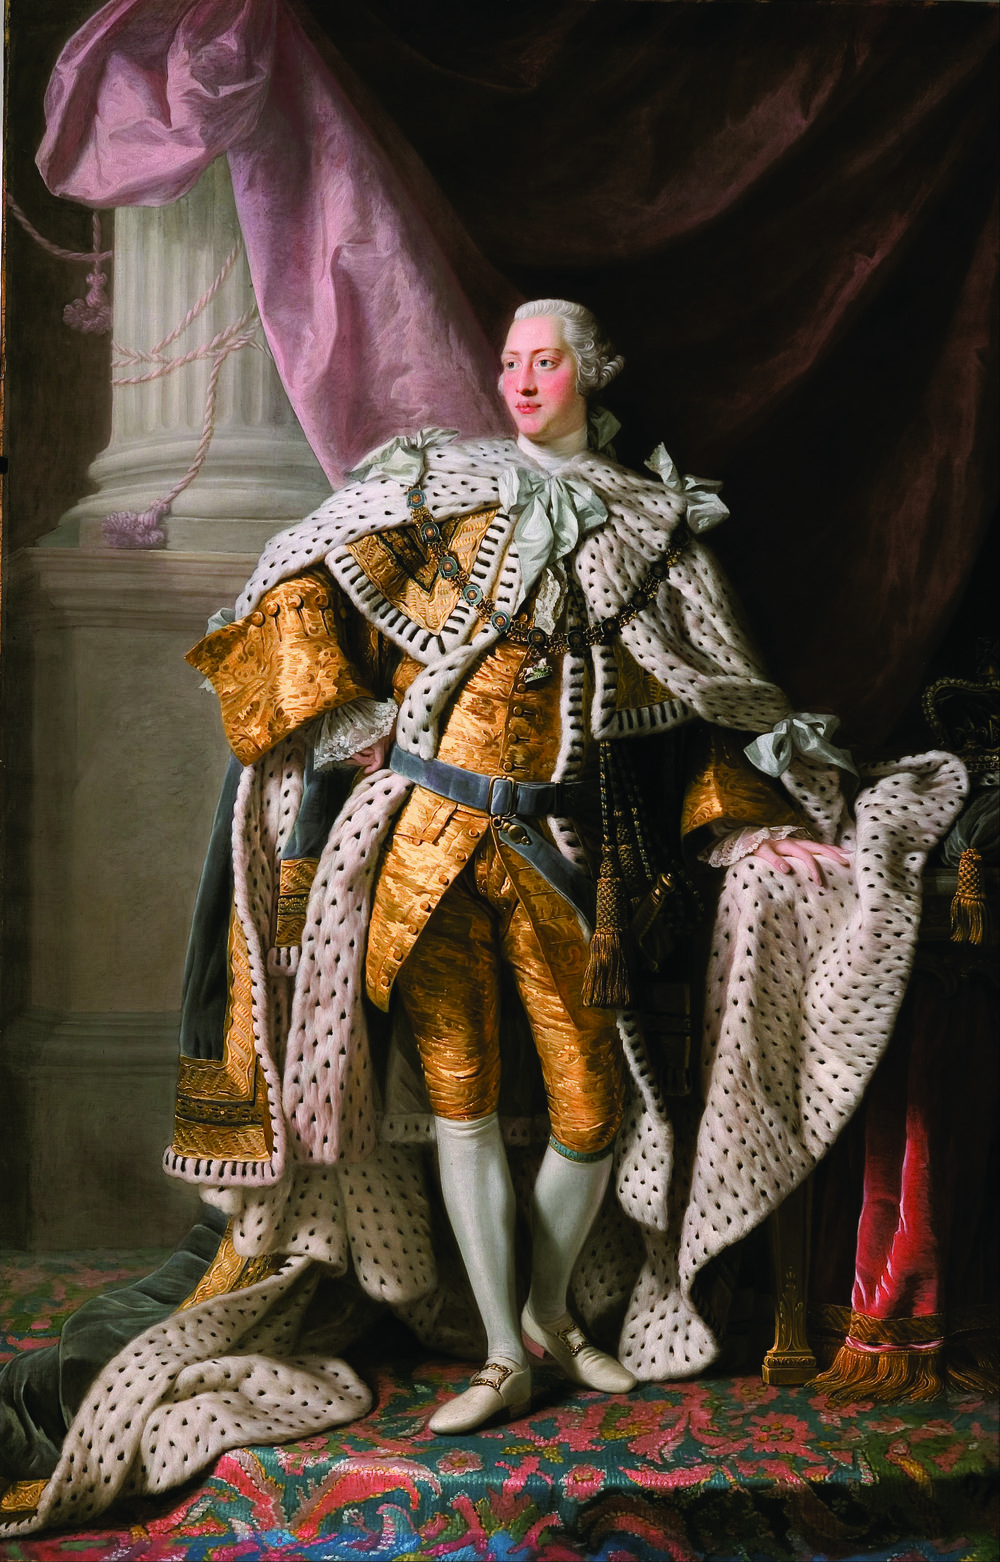 The 1762 Coronation portrait of King George III by Allan Ramsay. Wikimedia